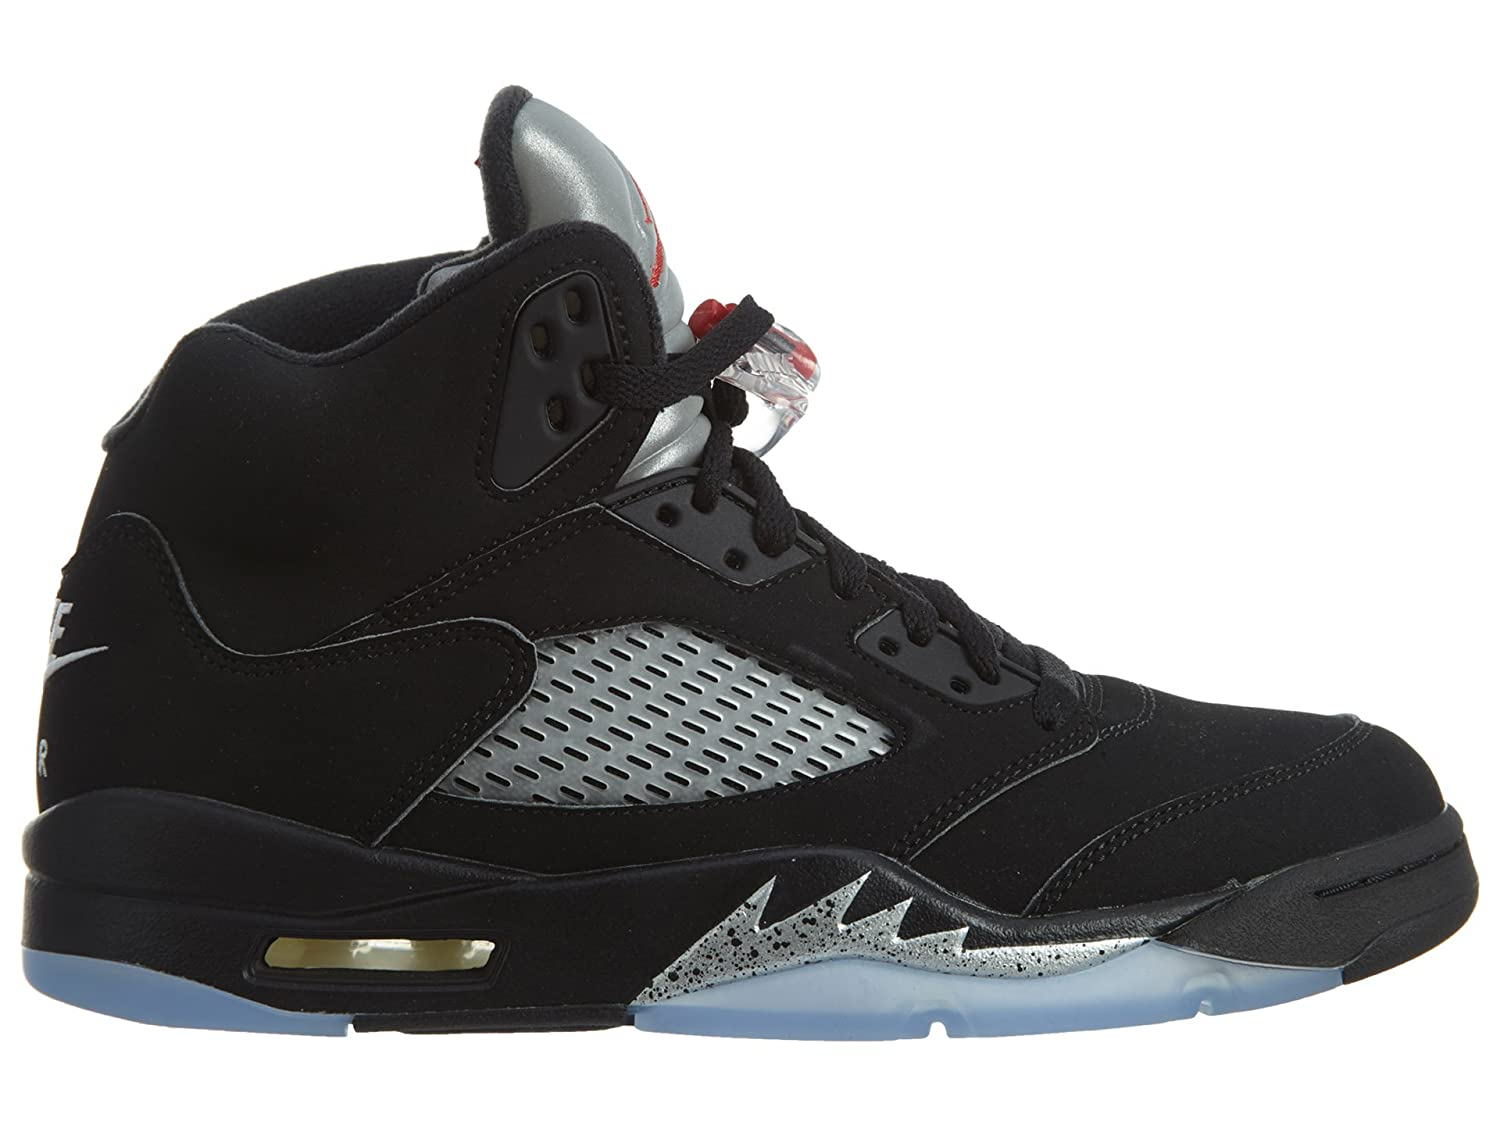 Mr/Ms Jordan Air 5 Retro OG Metallic 003 - 845035 003 Metallic Various goods Highly praised and appreciated by the consumer audience comfortable WW23158 dd9e71